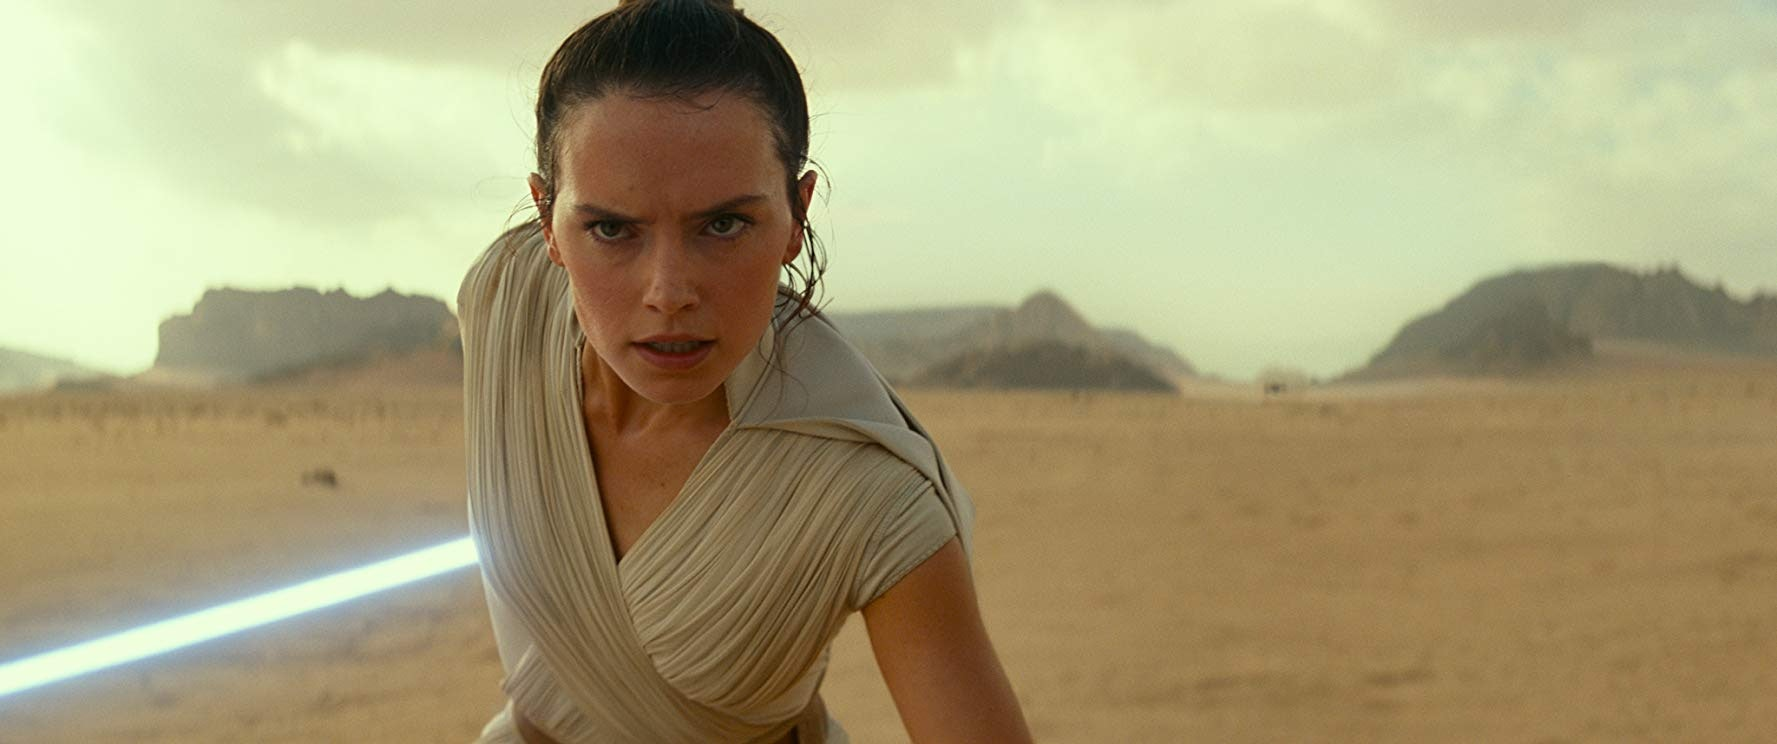 Daisy Ridley as Rey in 'Rise of Skywalker'